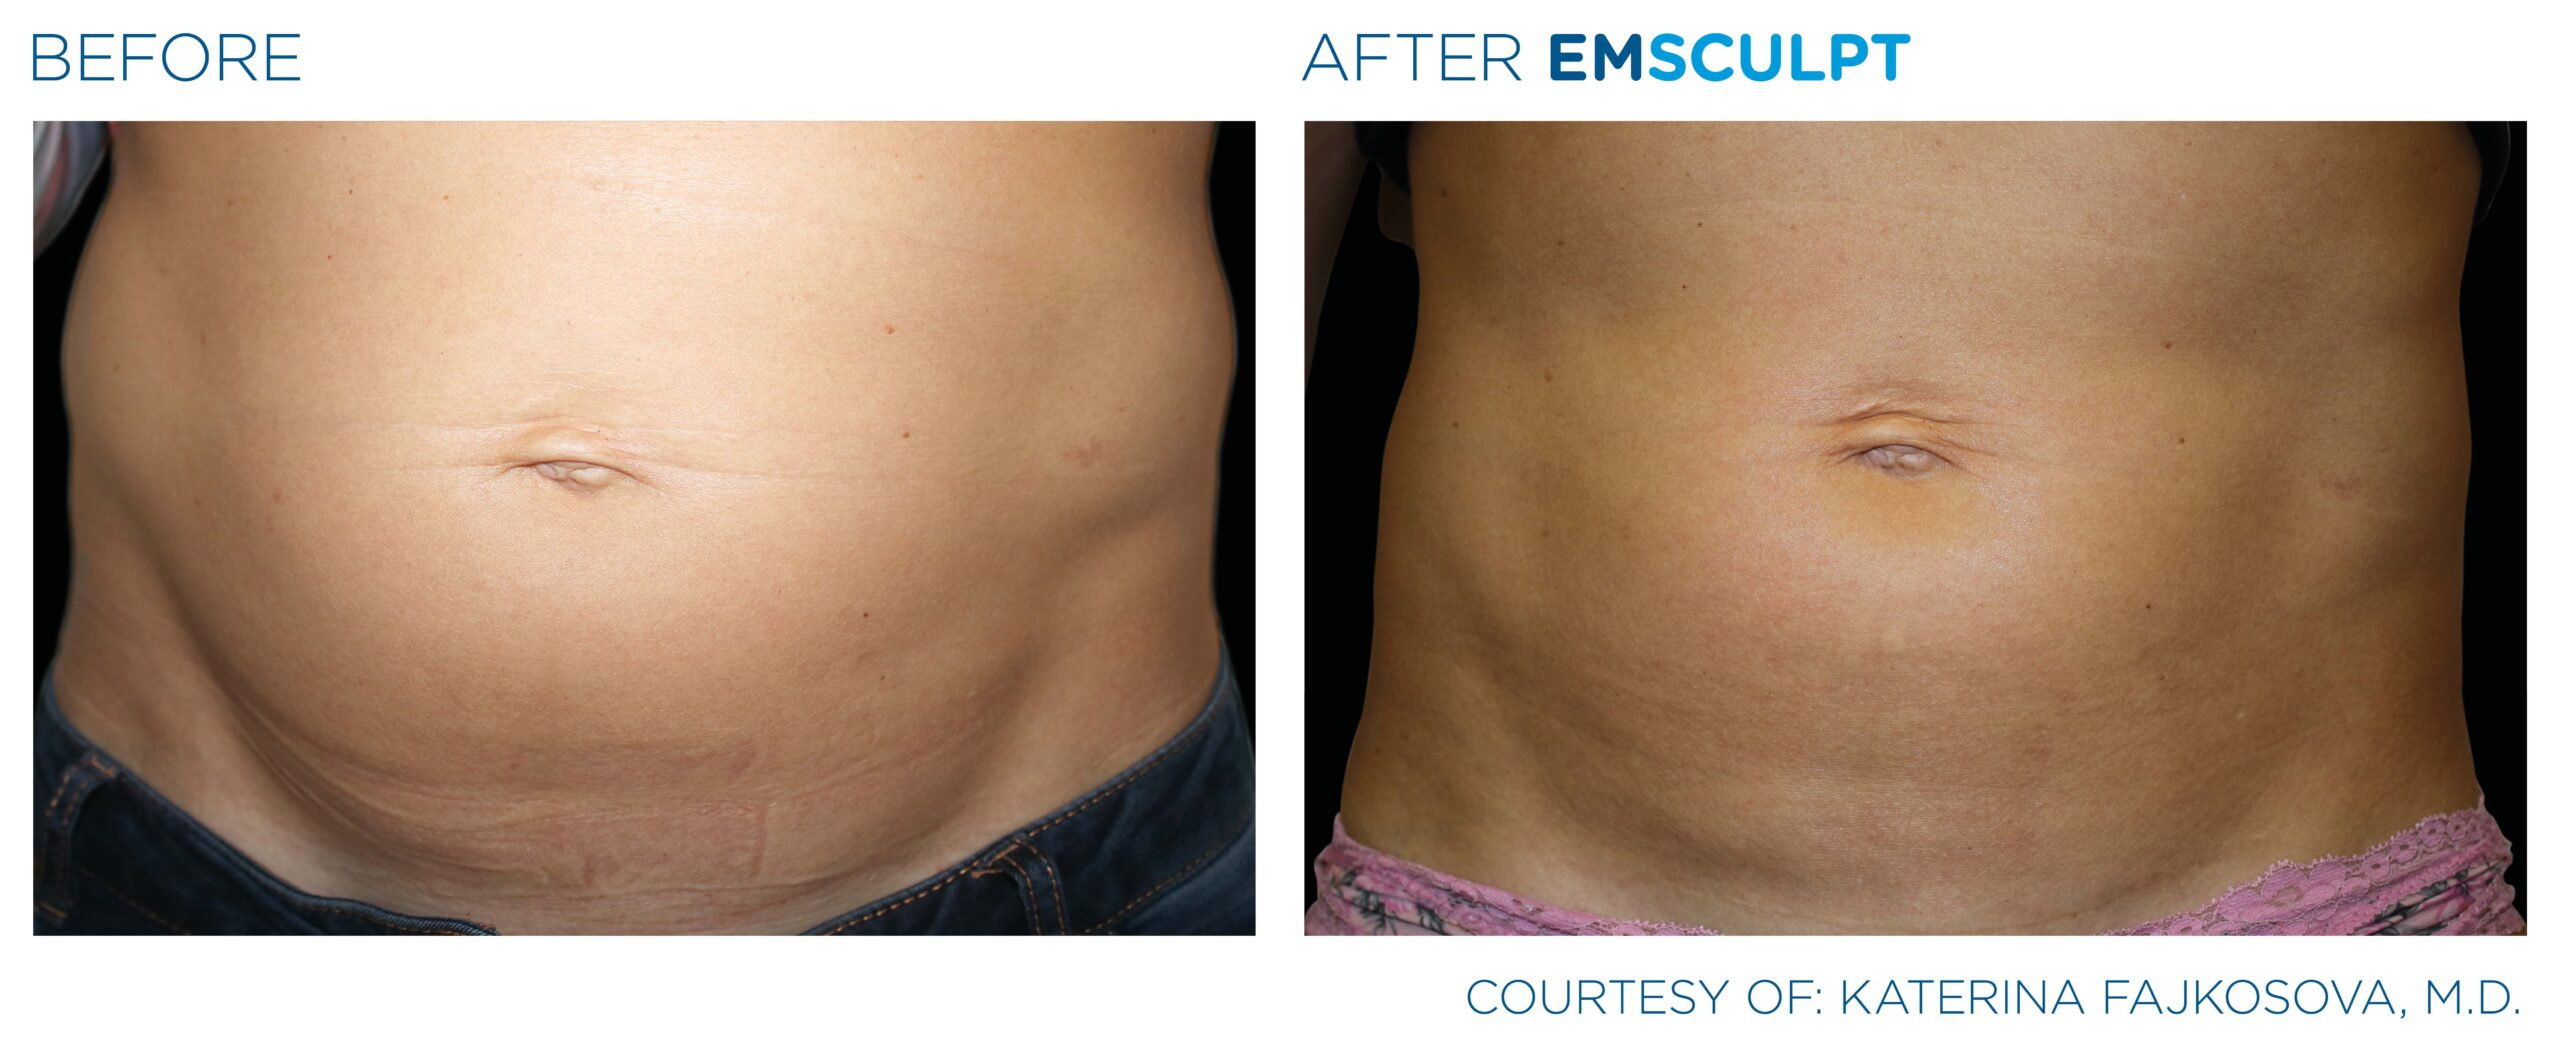 Before and After EMSculpt for the Abdomen